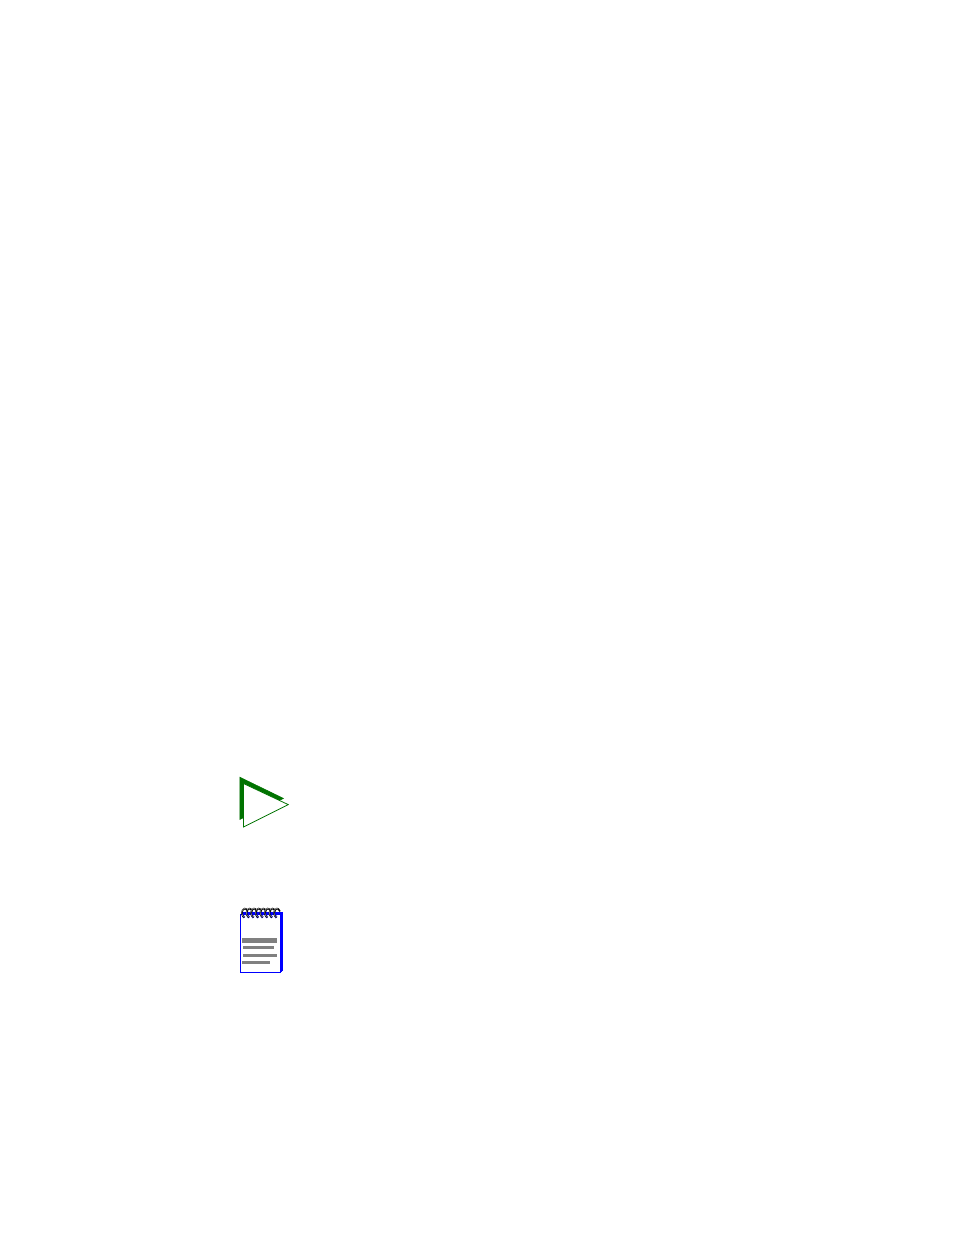 Local management for t1 service, Chapter 3, Describes ho | Cabletron ...